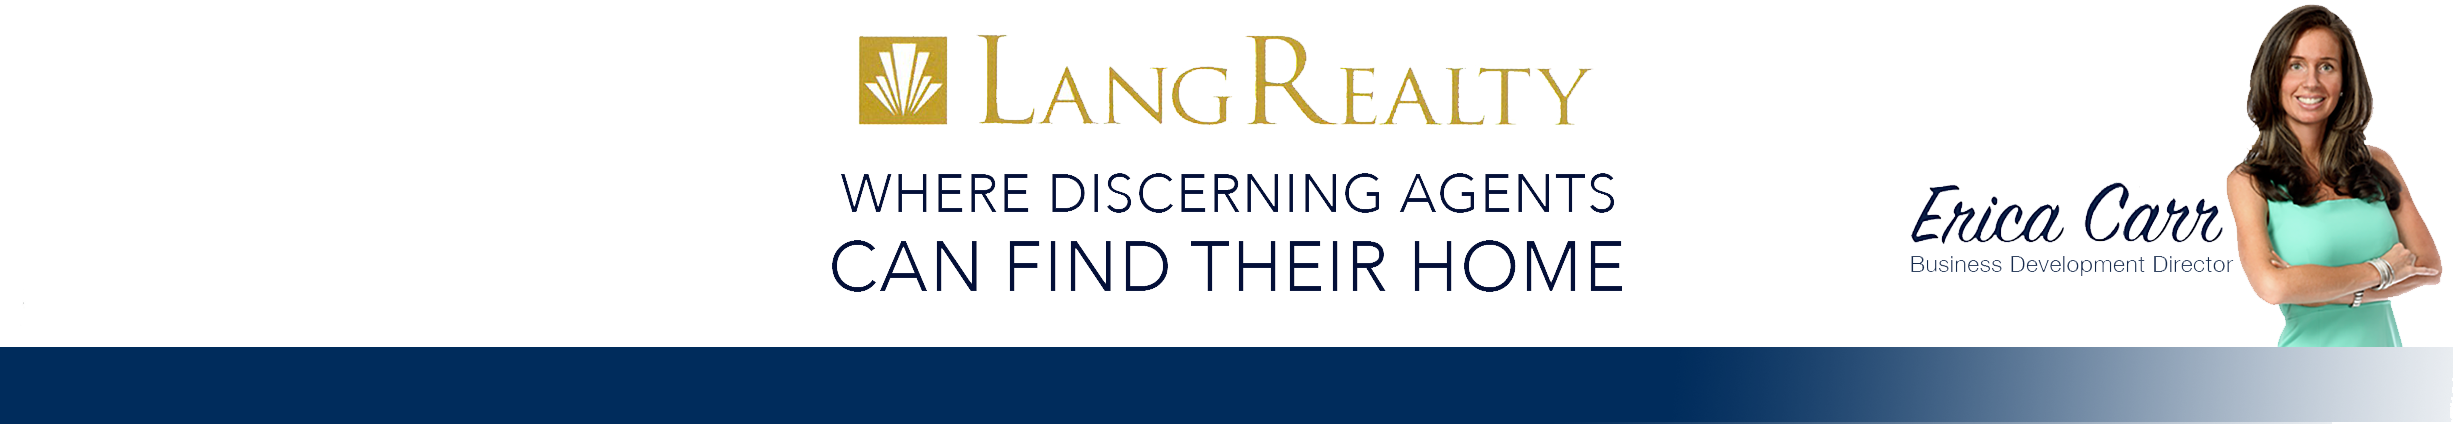 Lang Realty, Where Discerning Agents can find their Home